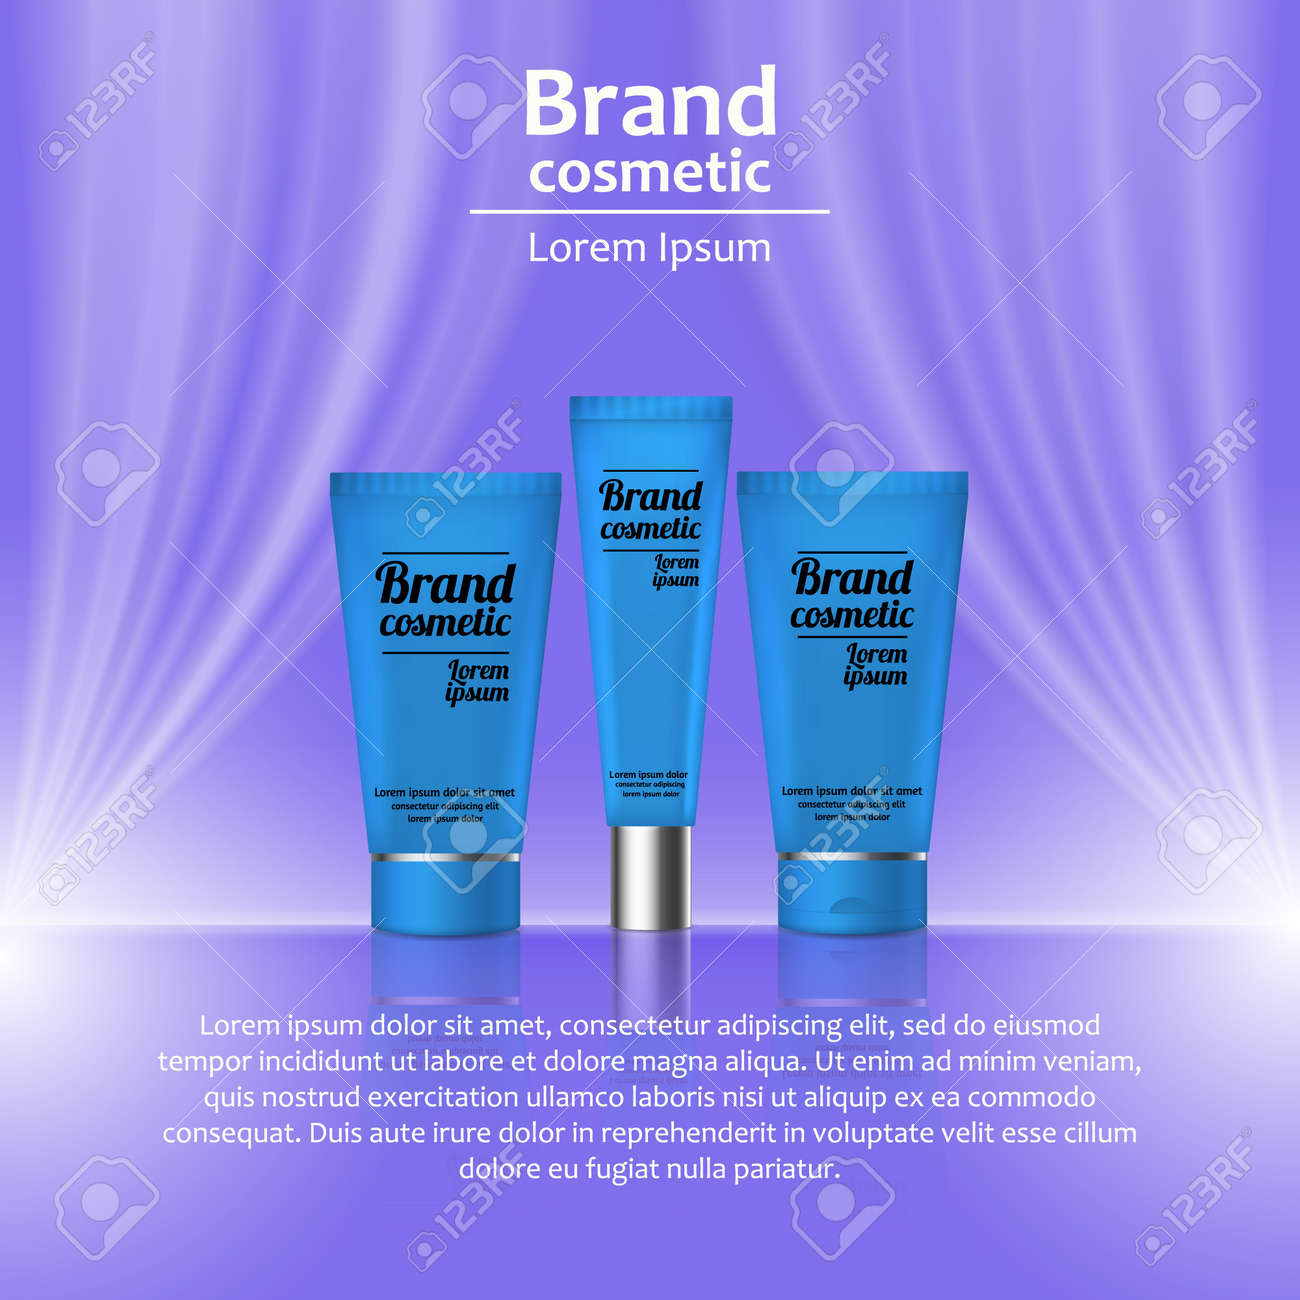 3d realistic cosmetic bottle ads template cosmetic brand